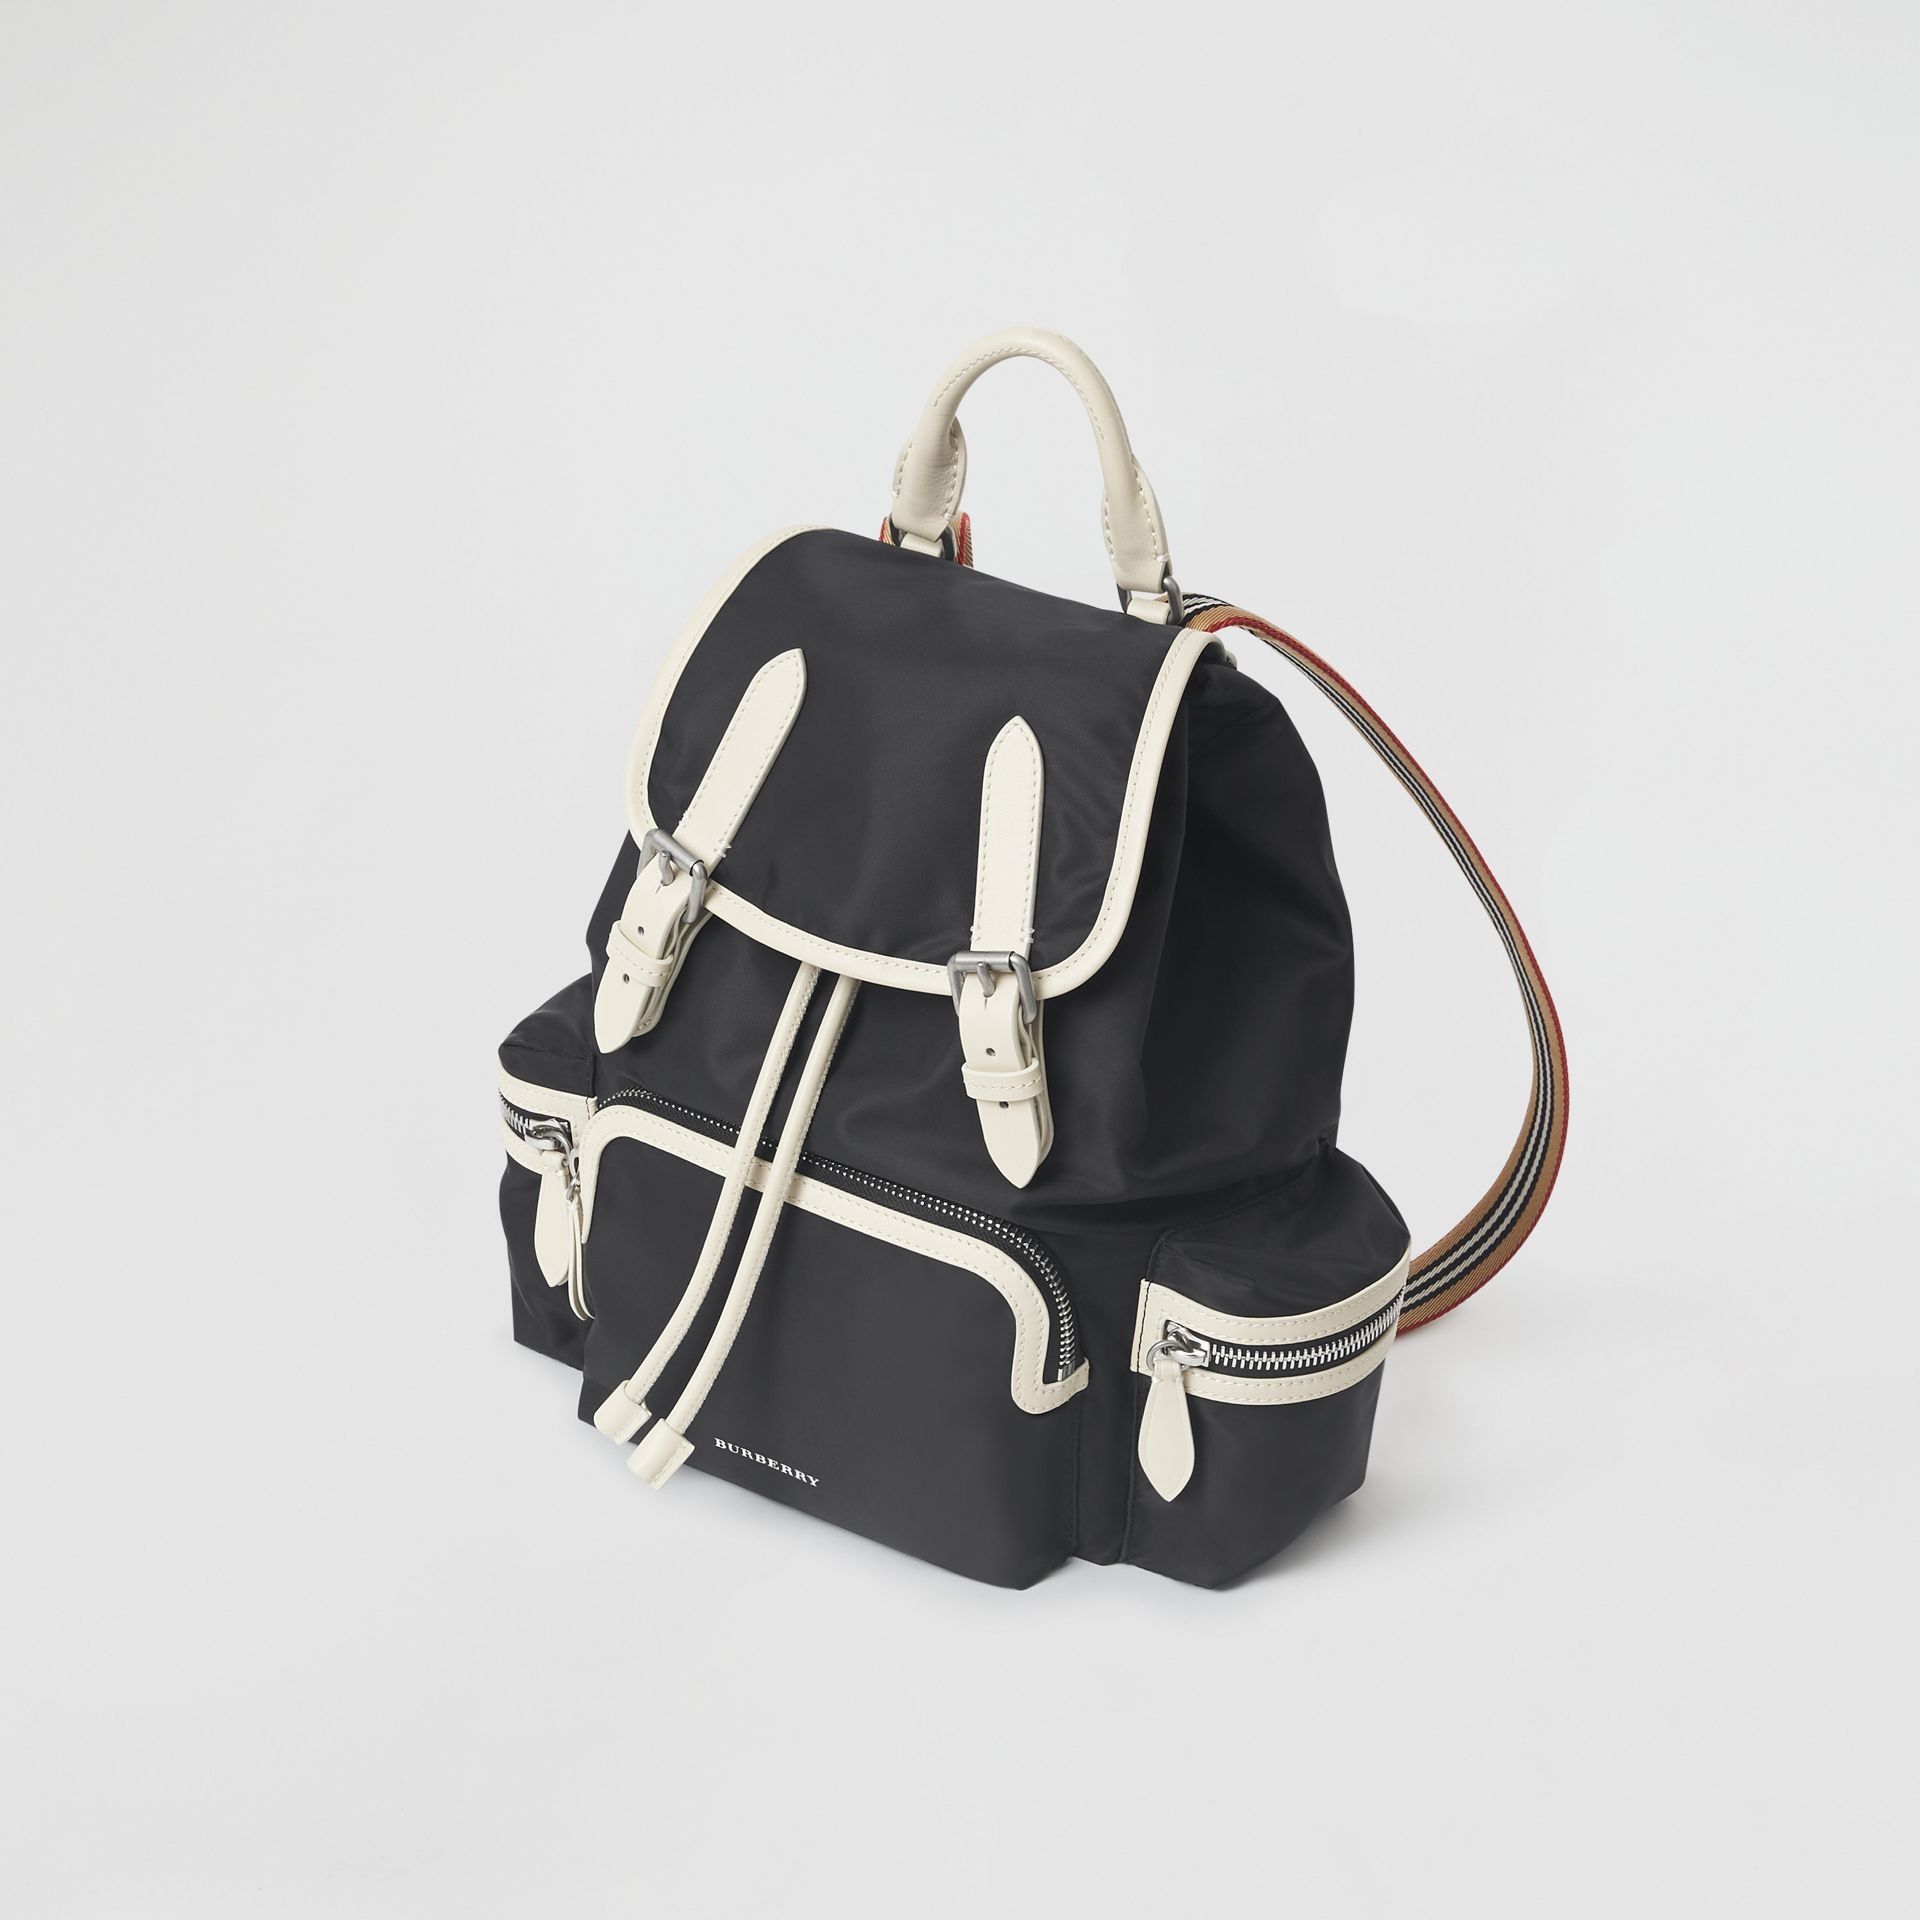 Zaino The Rucksack medio in nylon tecnico e pelle (Nero) - Donna | Burberry - immagine della galleria 4